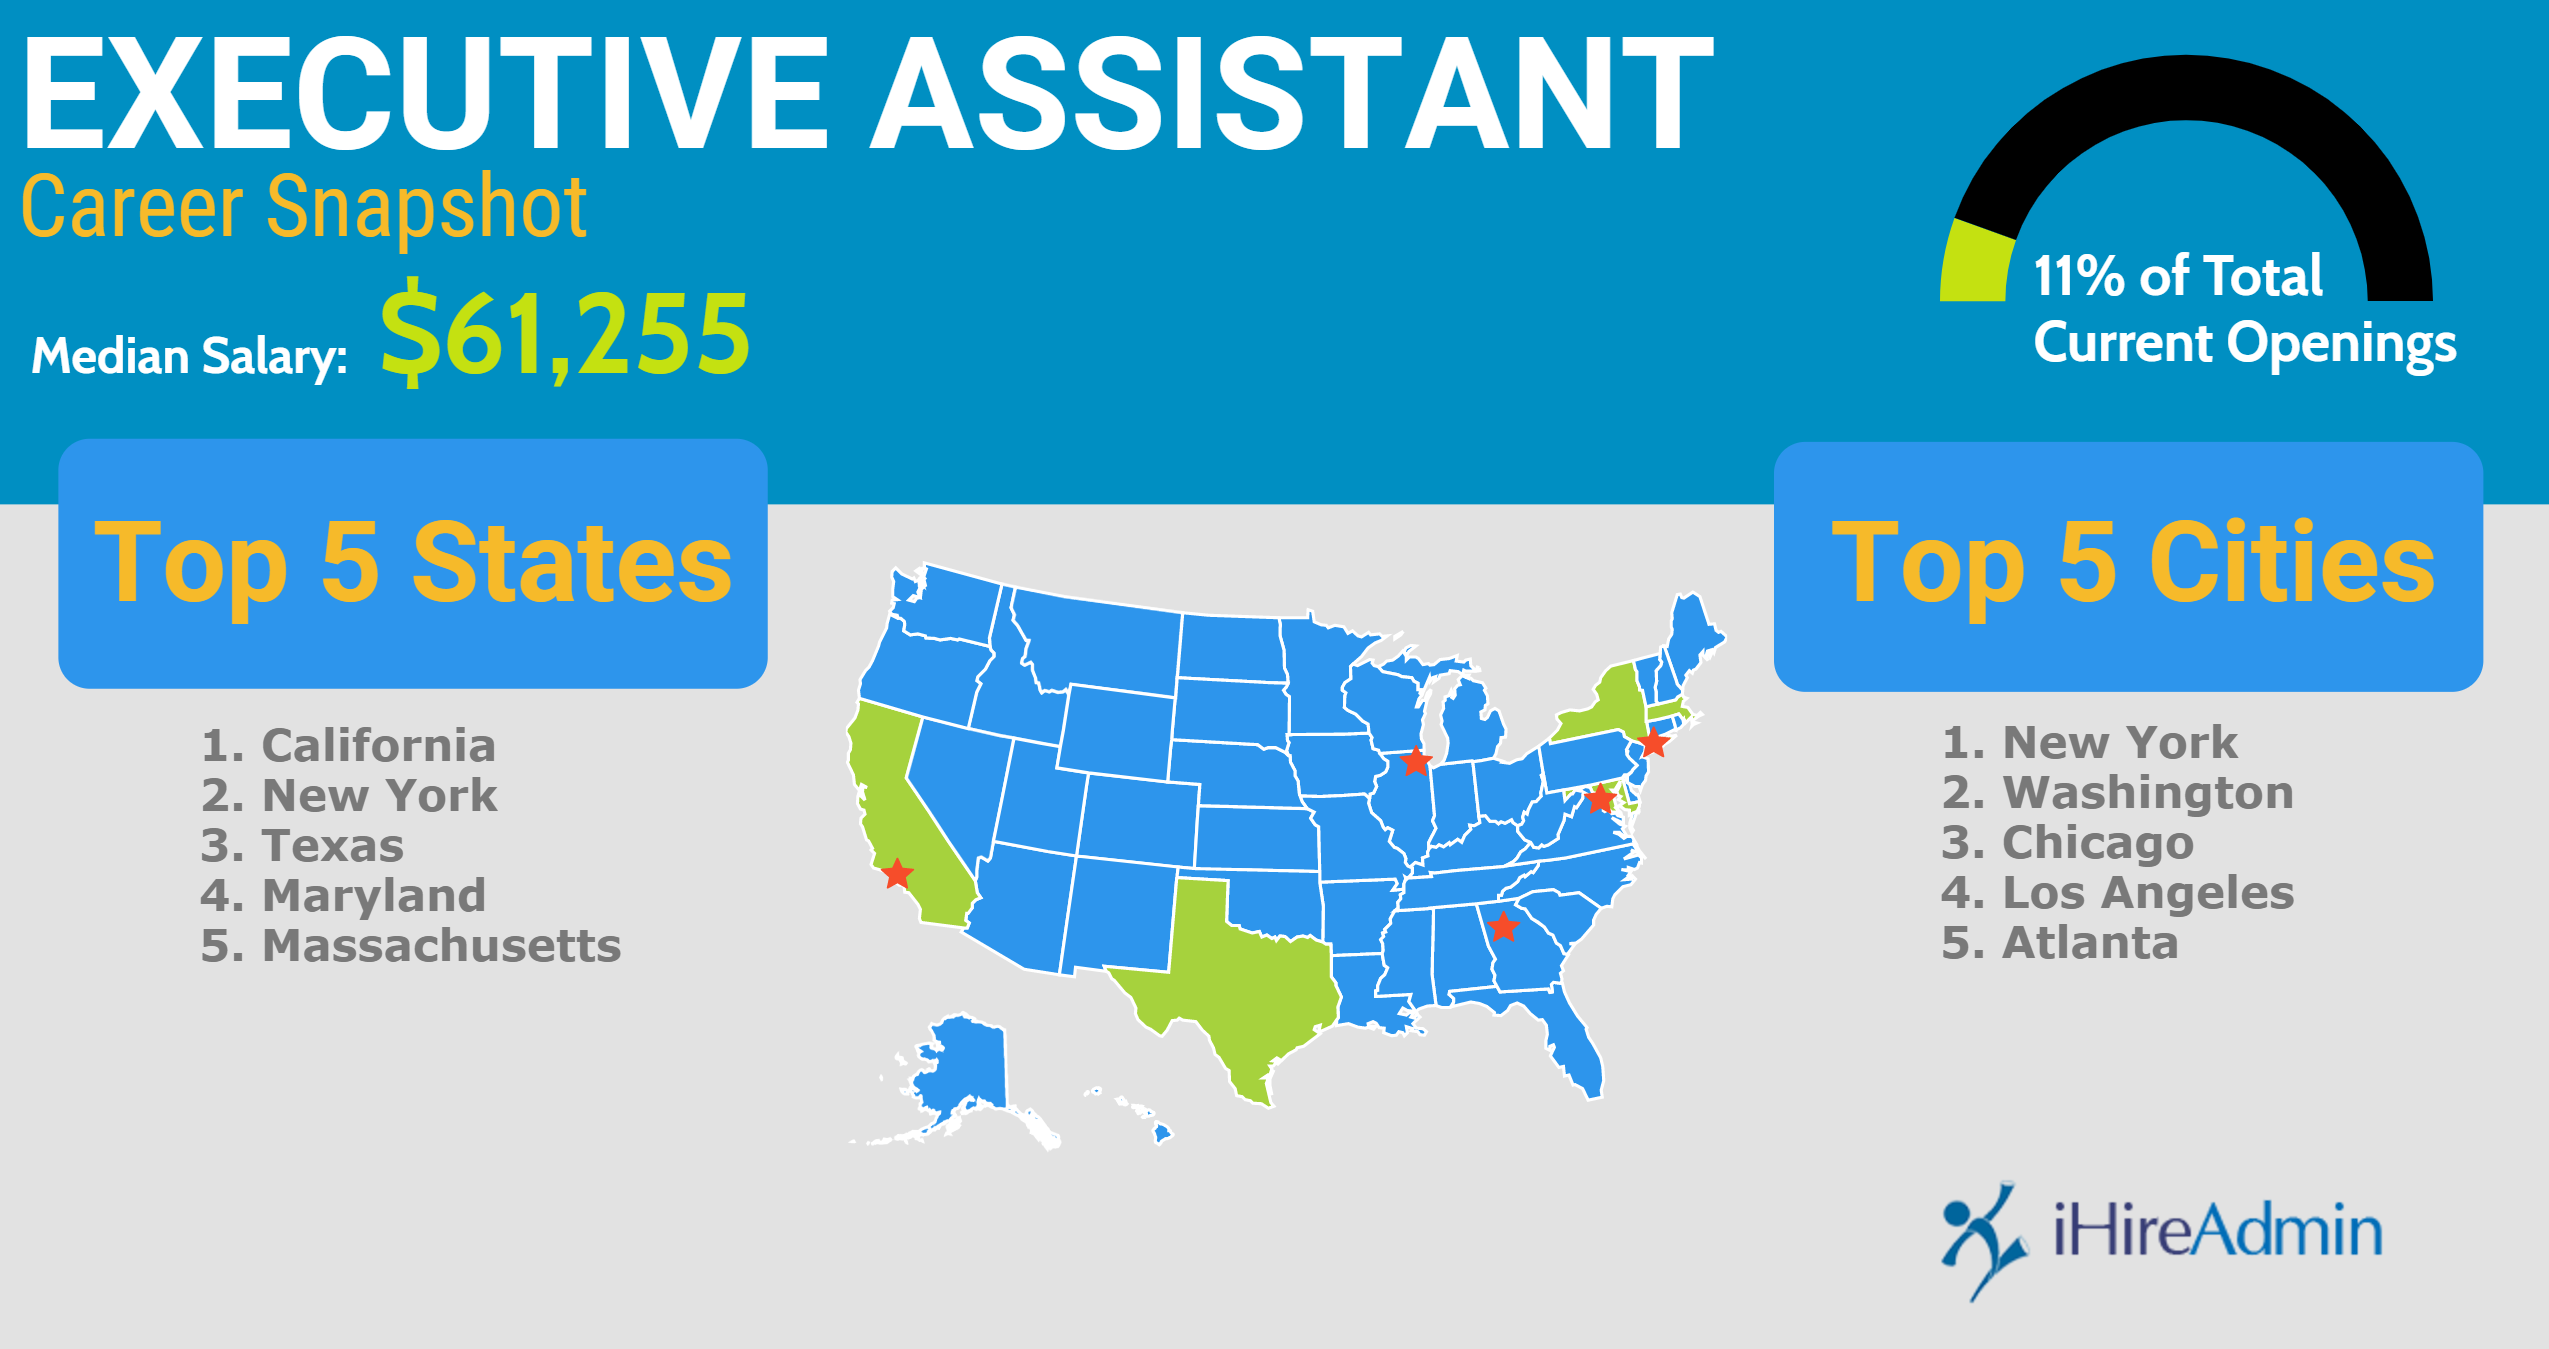 Executive assistant career snapshot infographic